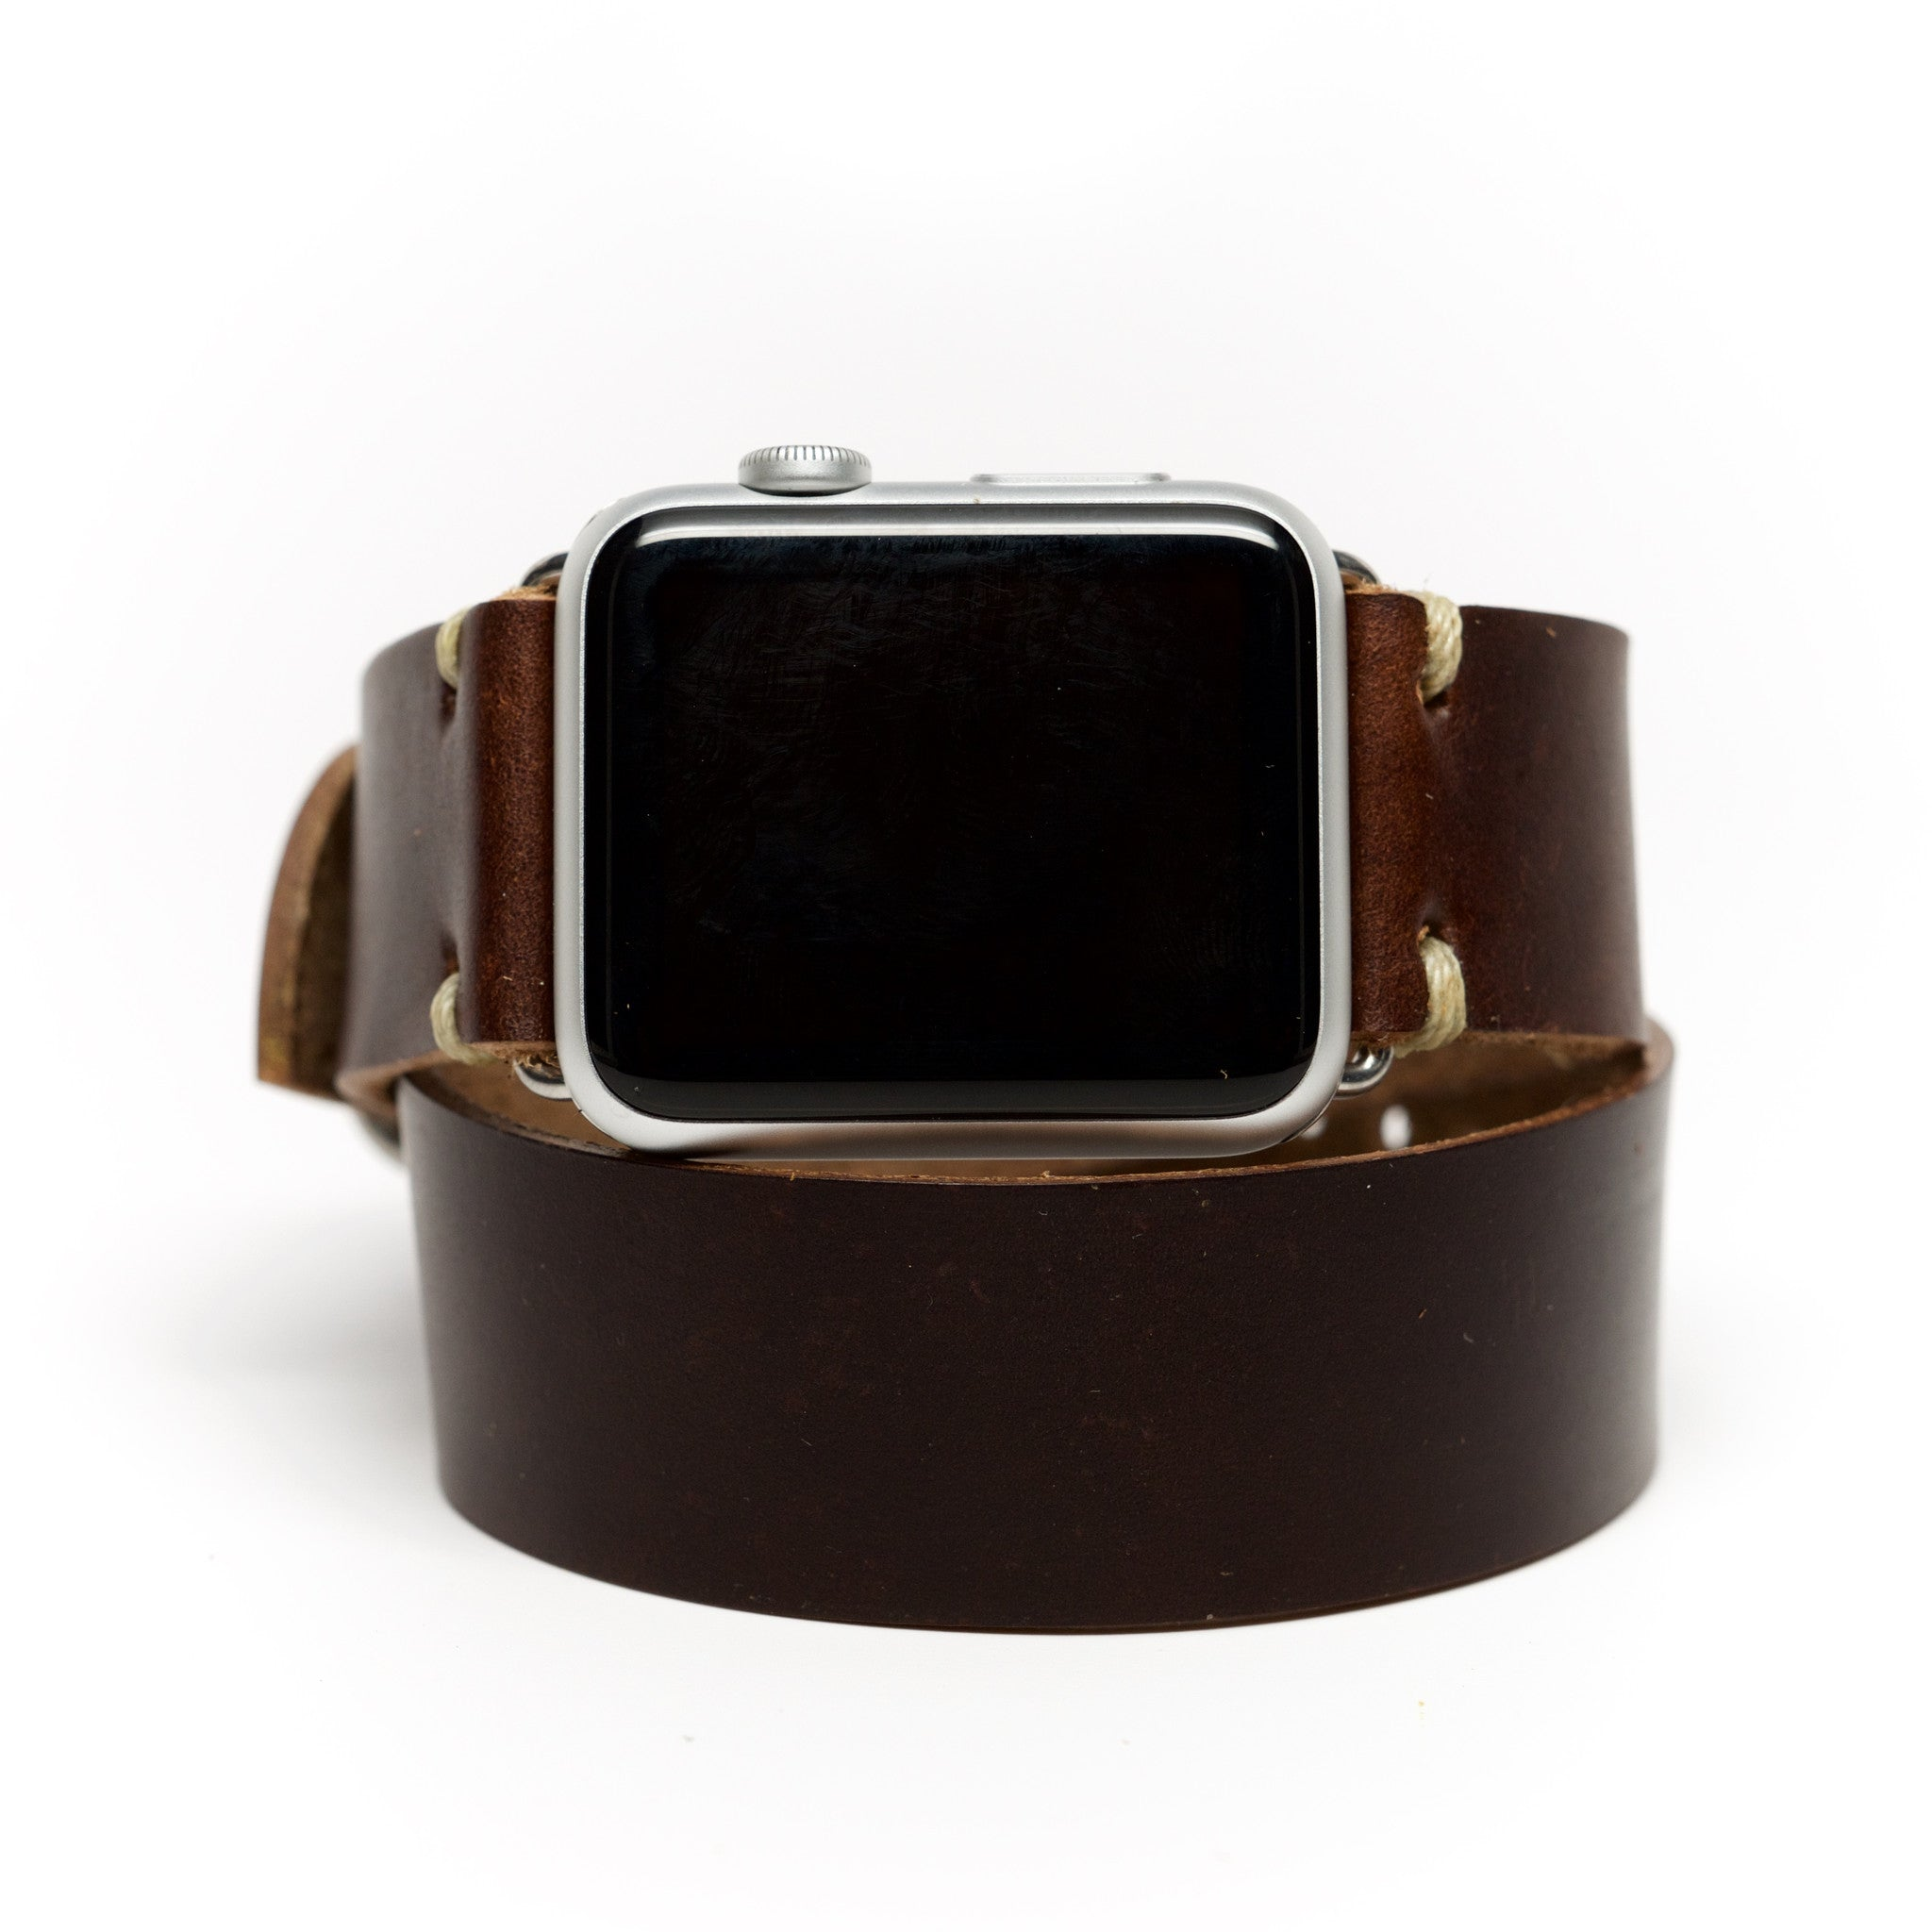 Double Wrap Apple Watch Band by E3 Supply Co. - Brown Chromexcel